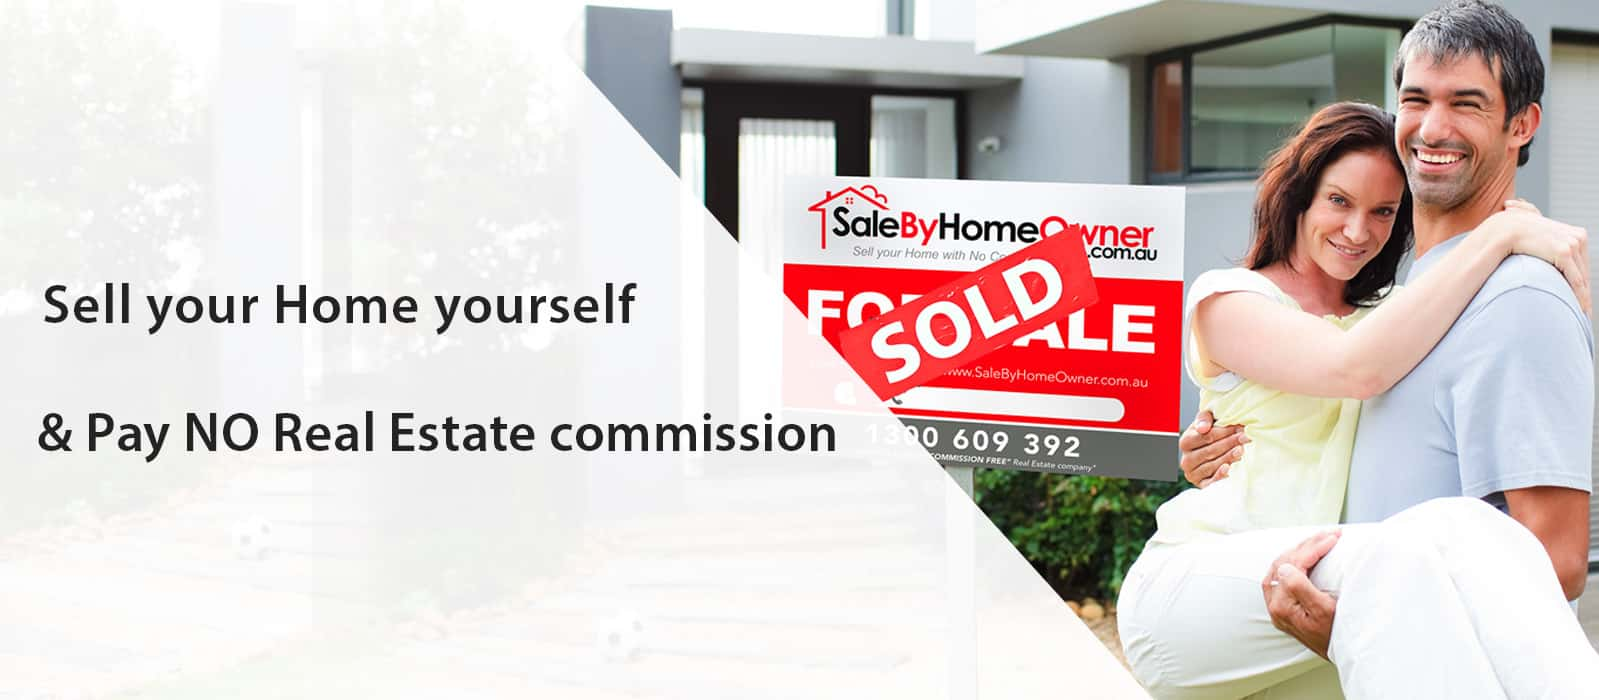 For Sale By Owner Homes in Australia